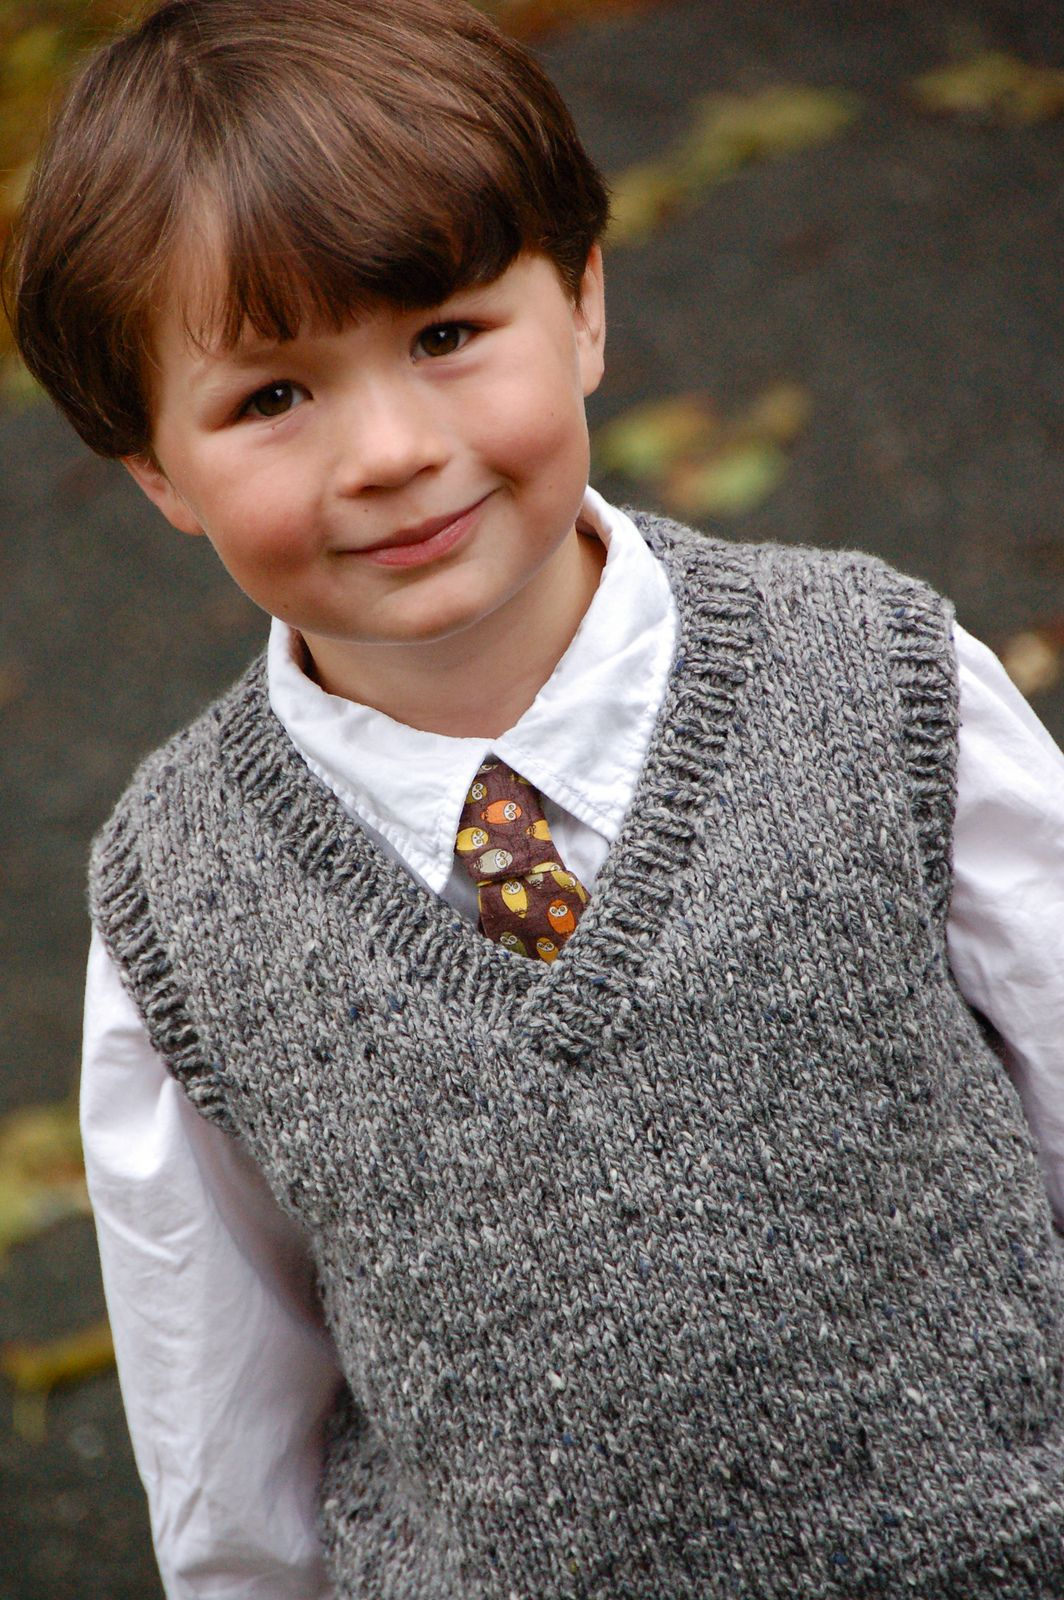 Ravelry 256 basic vest for children by diane soucy kts 256 basic vest for children pattern by diane soucy bankloansurffo Gallery